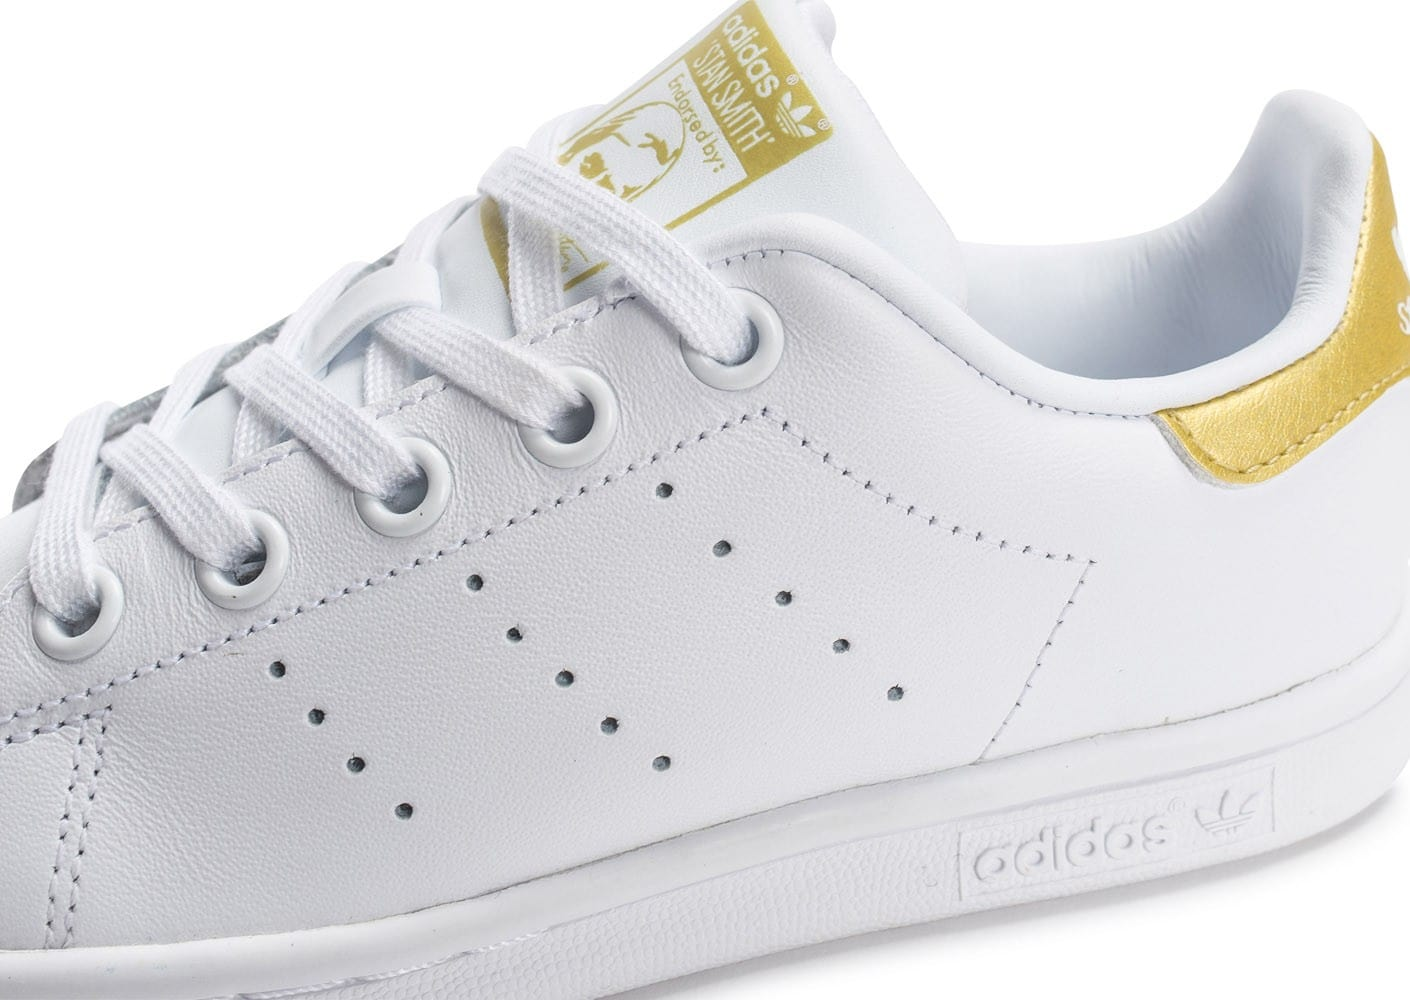 ... Chaussures adidas Stan Smith Enfant blanche et or vue dessus